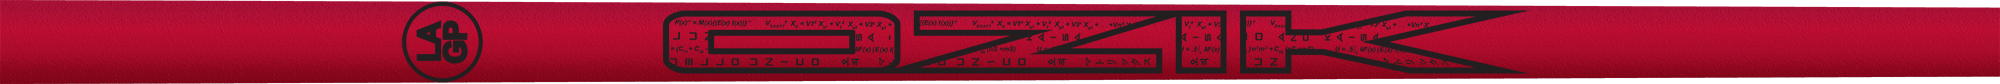 Ozik White Tie: Candy Apple Red Black Textured - Wood 50 R